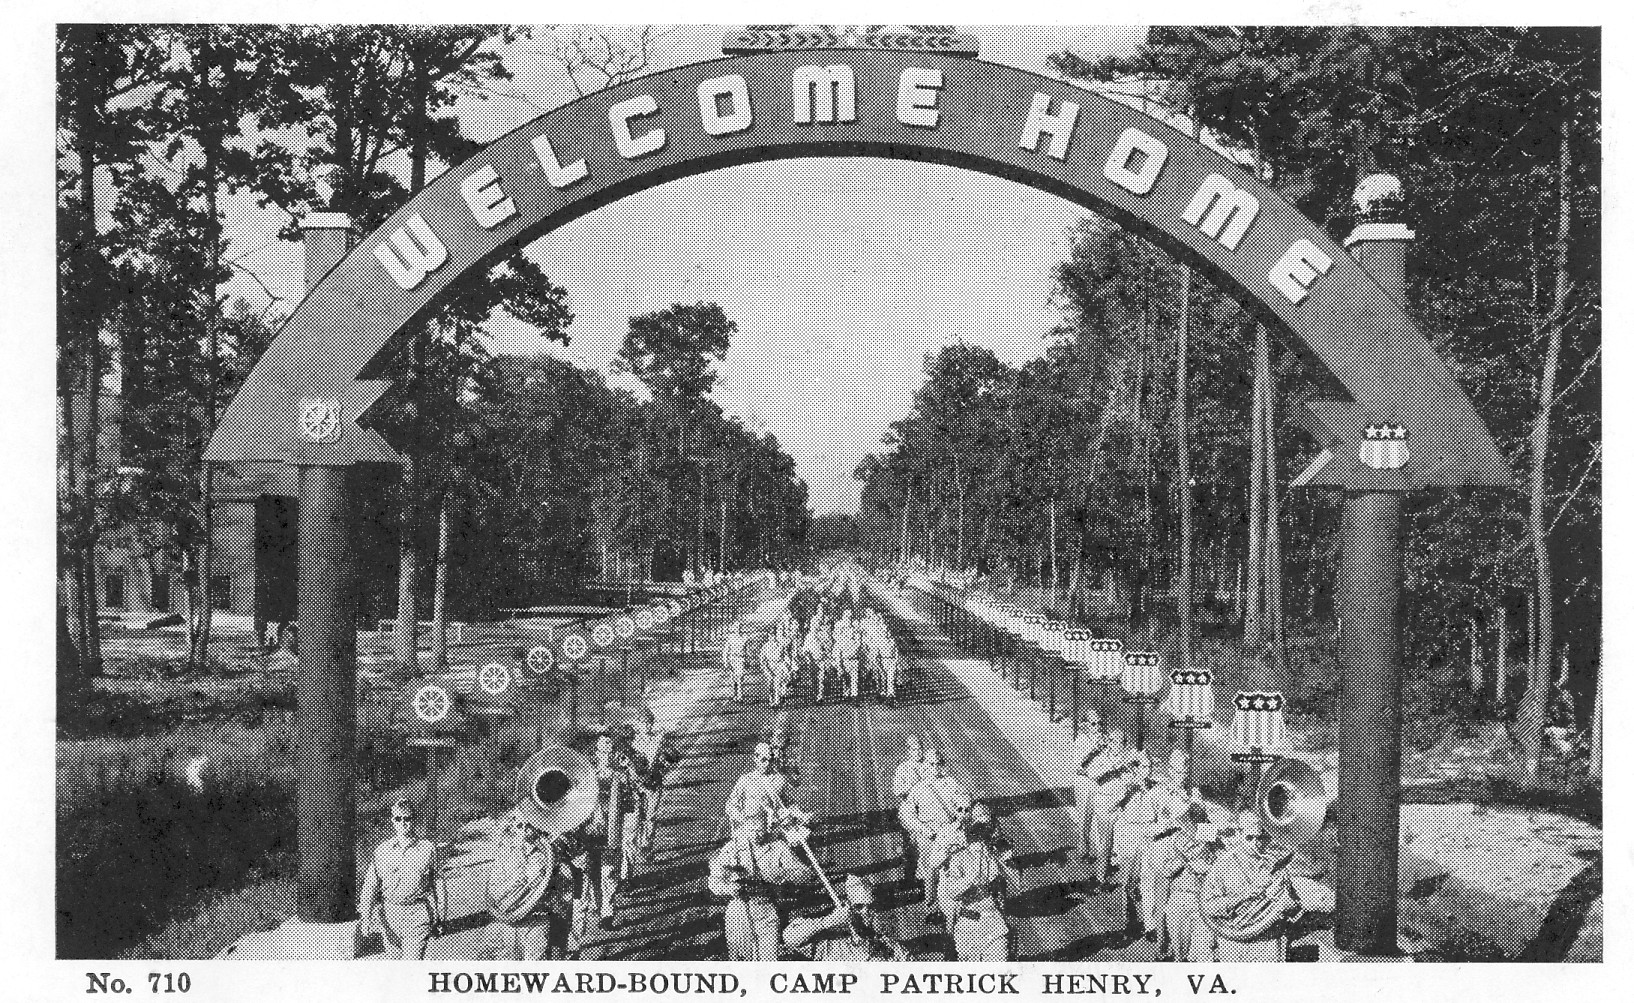 Welcome Home, Camp Patrick Henry, VA